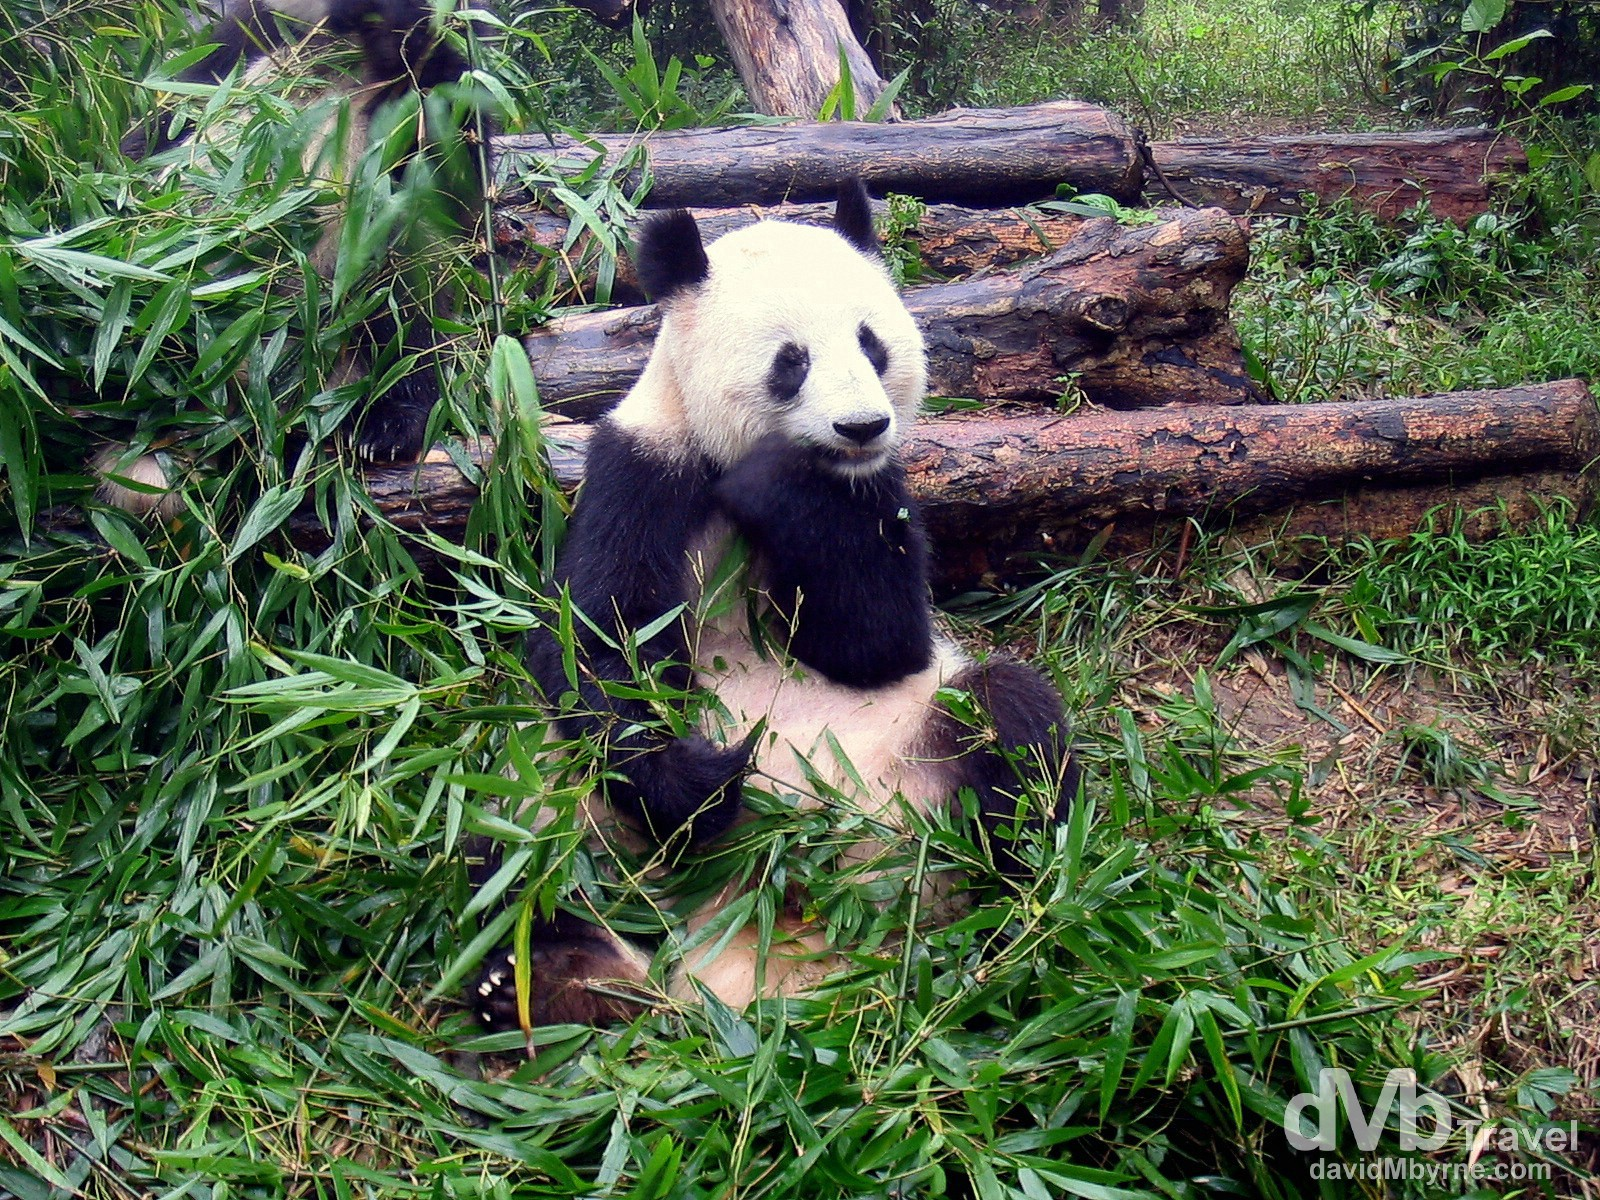 At the Chengdu Research Base of Giant Panda Breeding, Sichuan Province, Central China. September 24th, 2004.